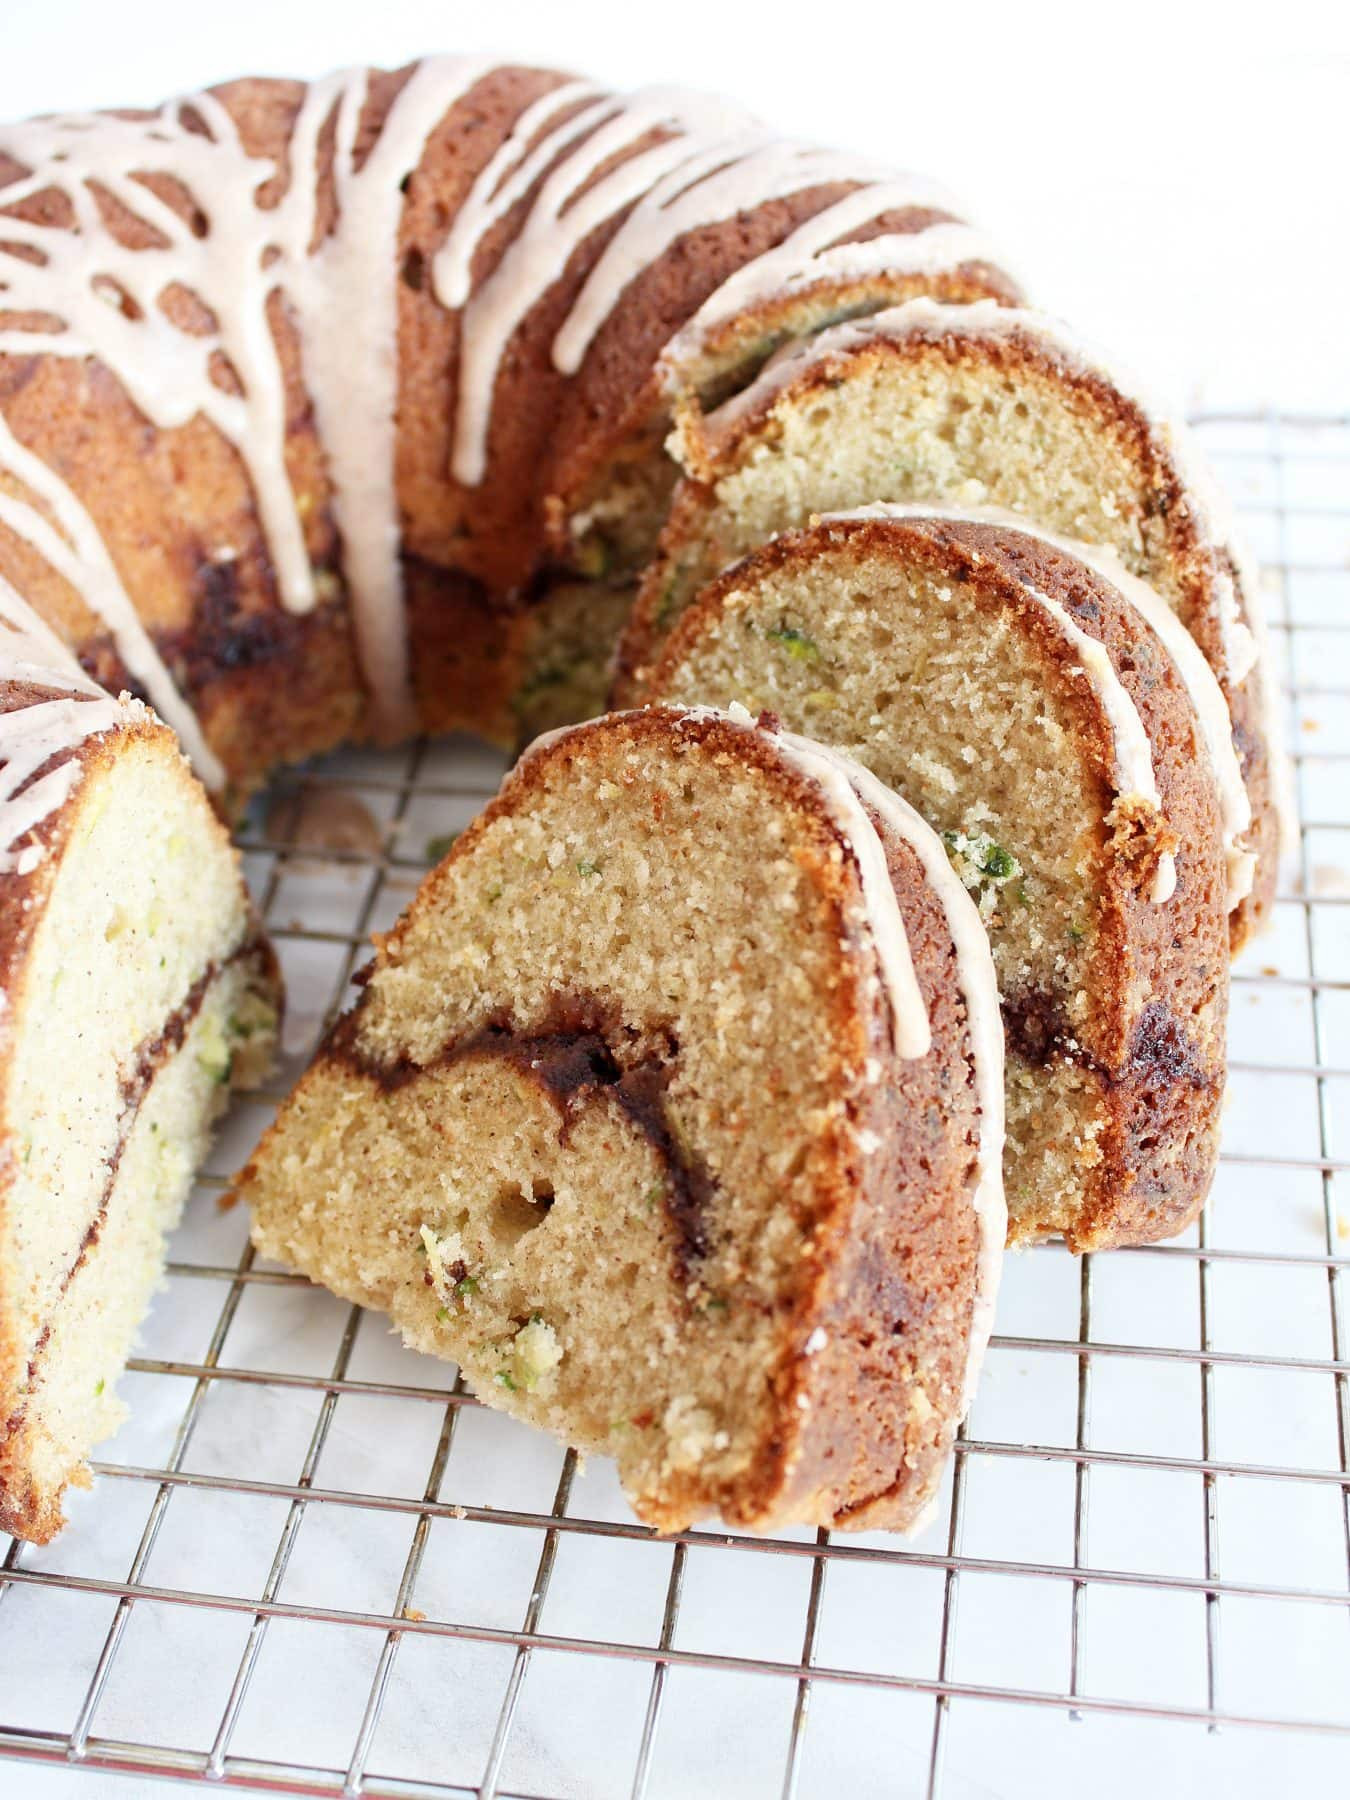 Cinnamon Bundt Cake  Cinnamon Zucchini Bundt Cake If You Give a Blonde a Kitchen